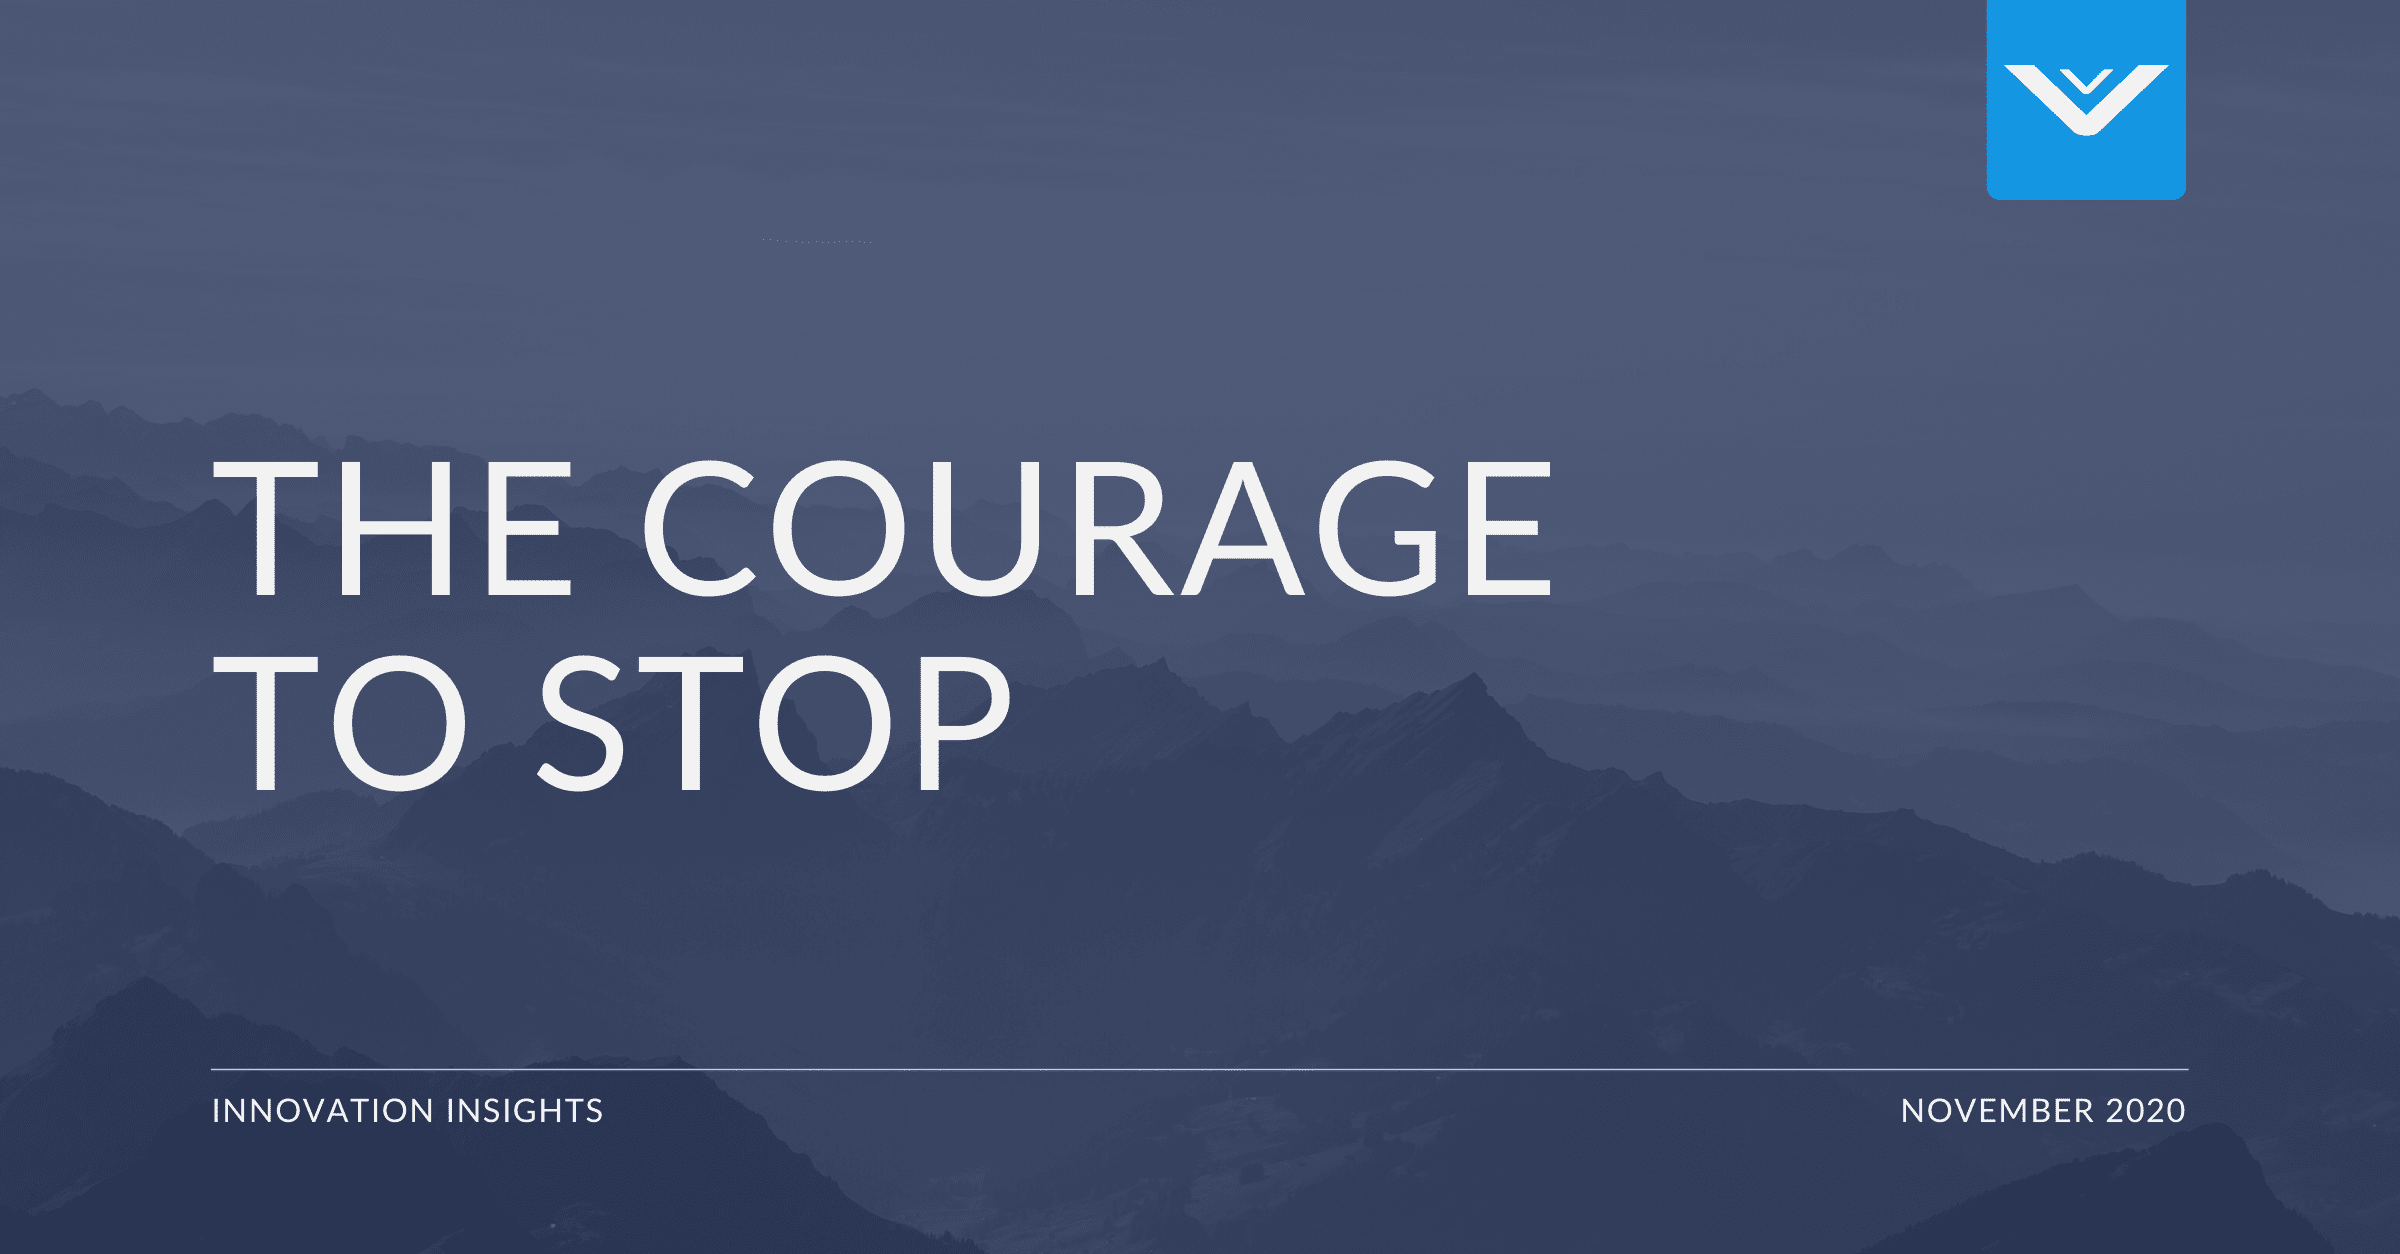 The Courage To Stop